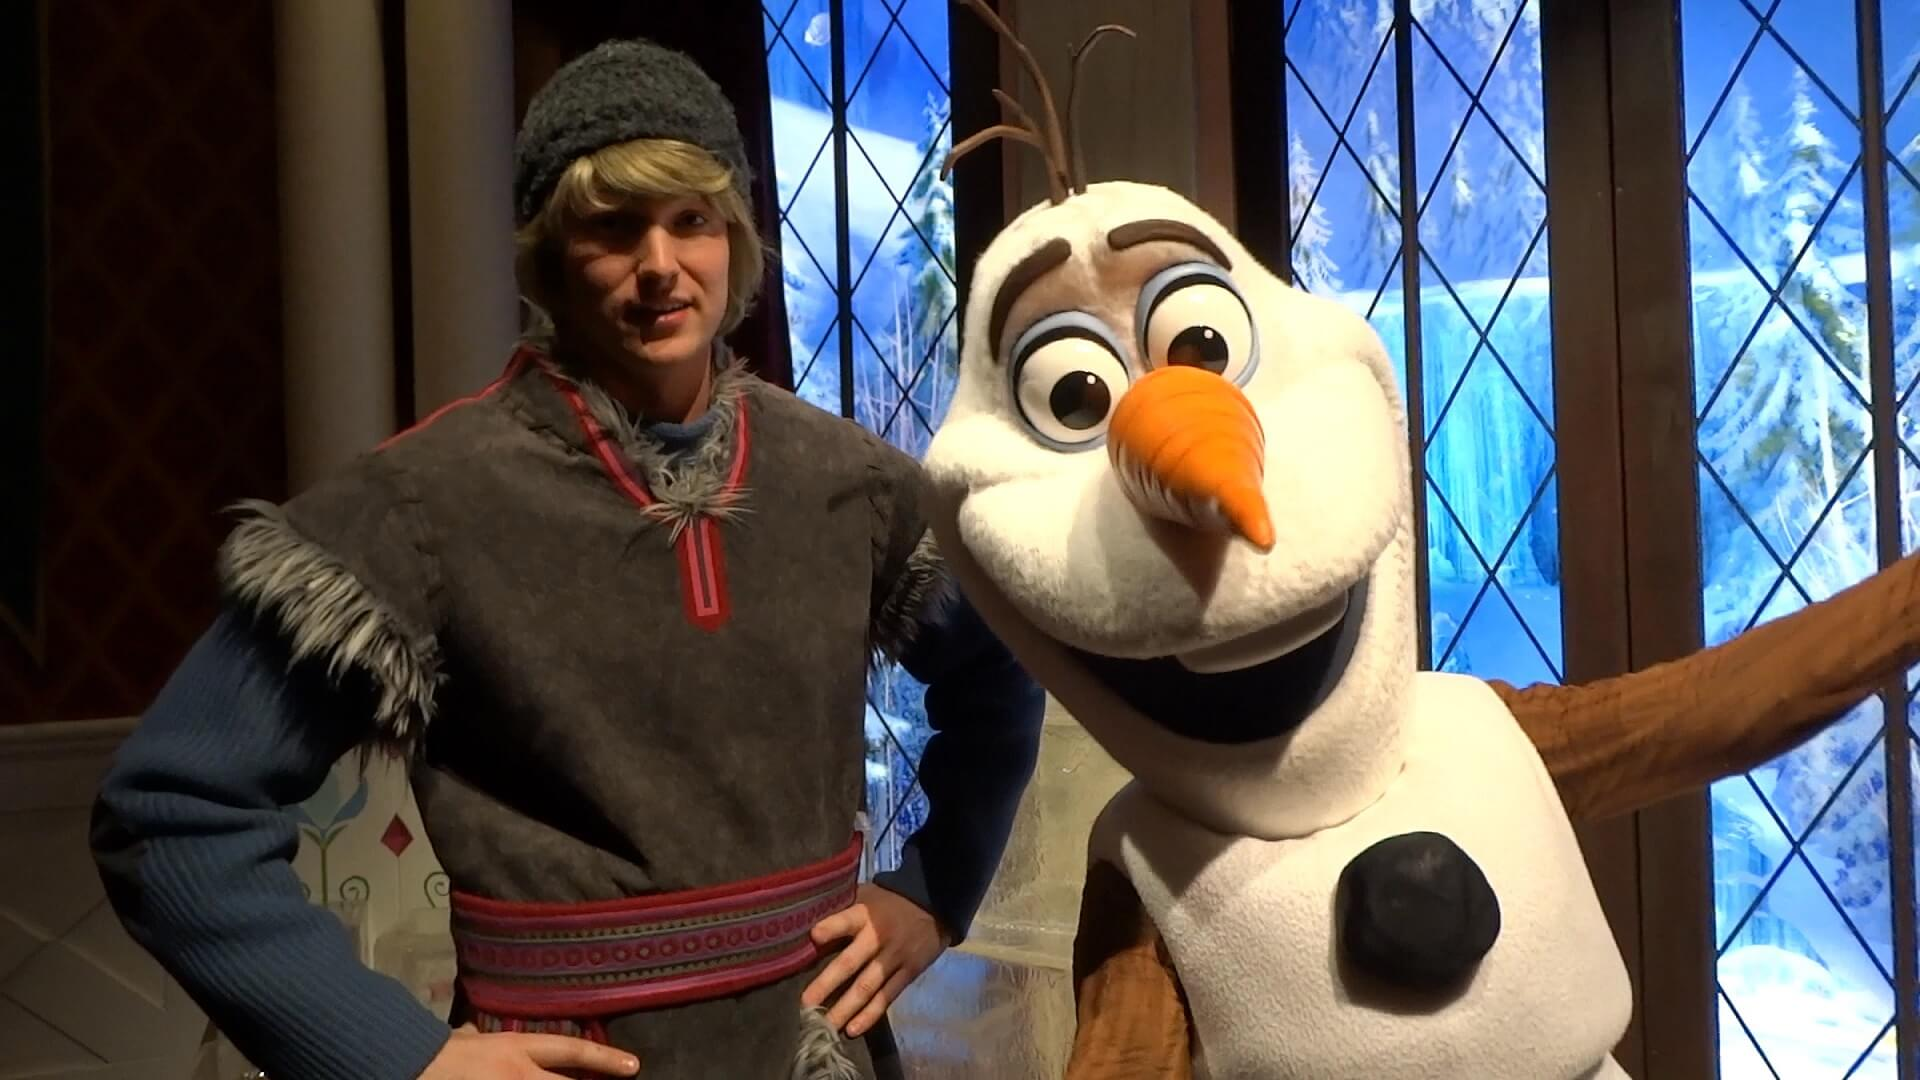 Kristoff Olaf Pair Up In New Frozen Meet And Greet At Disneyland